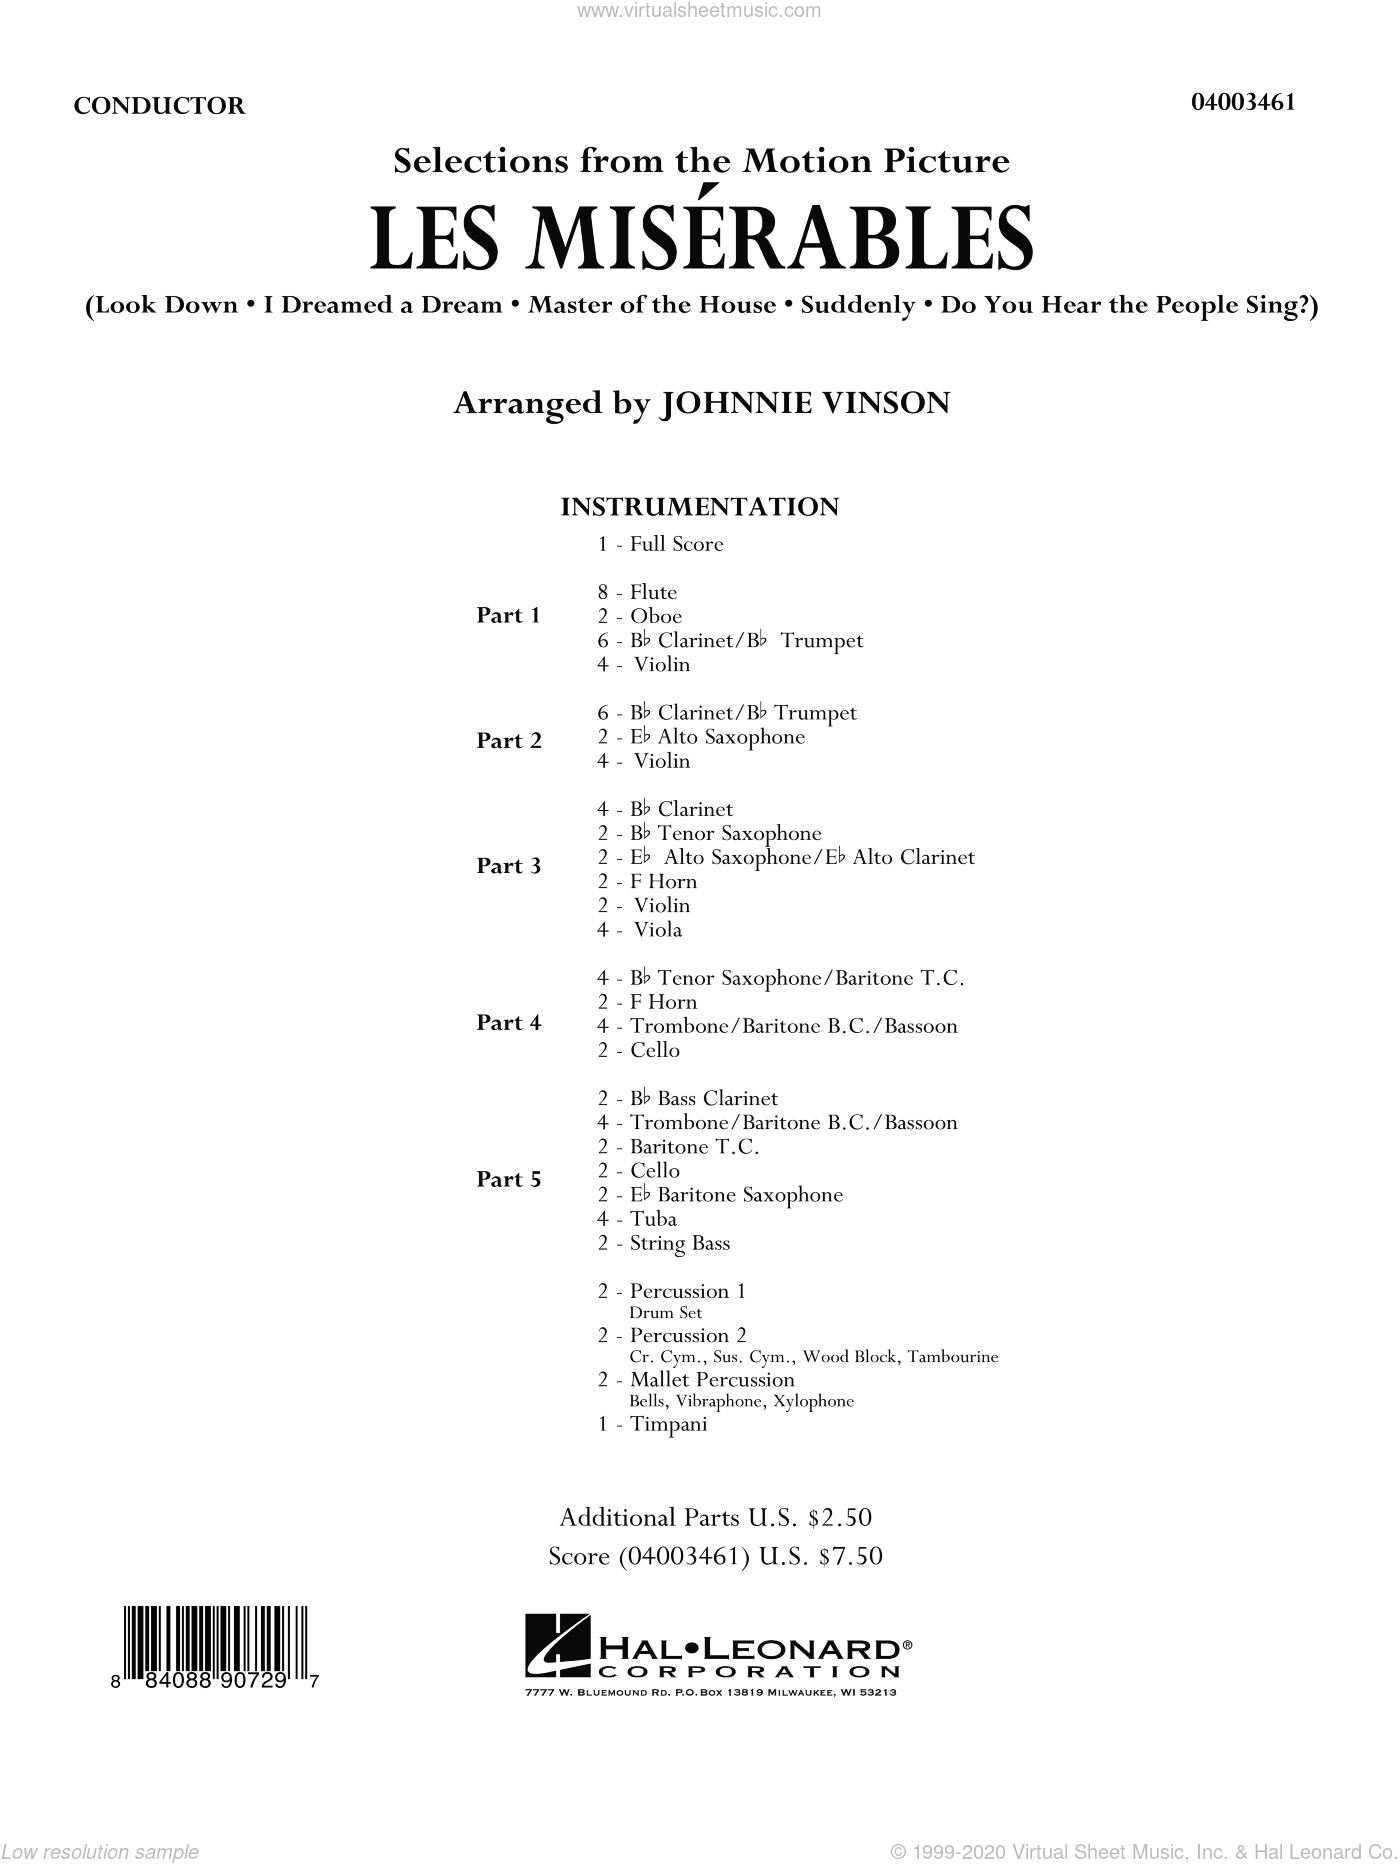 Les Miserables (Selections from the Motion Picture) sheet music for concert band (full score) by Johnnie Vinson